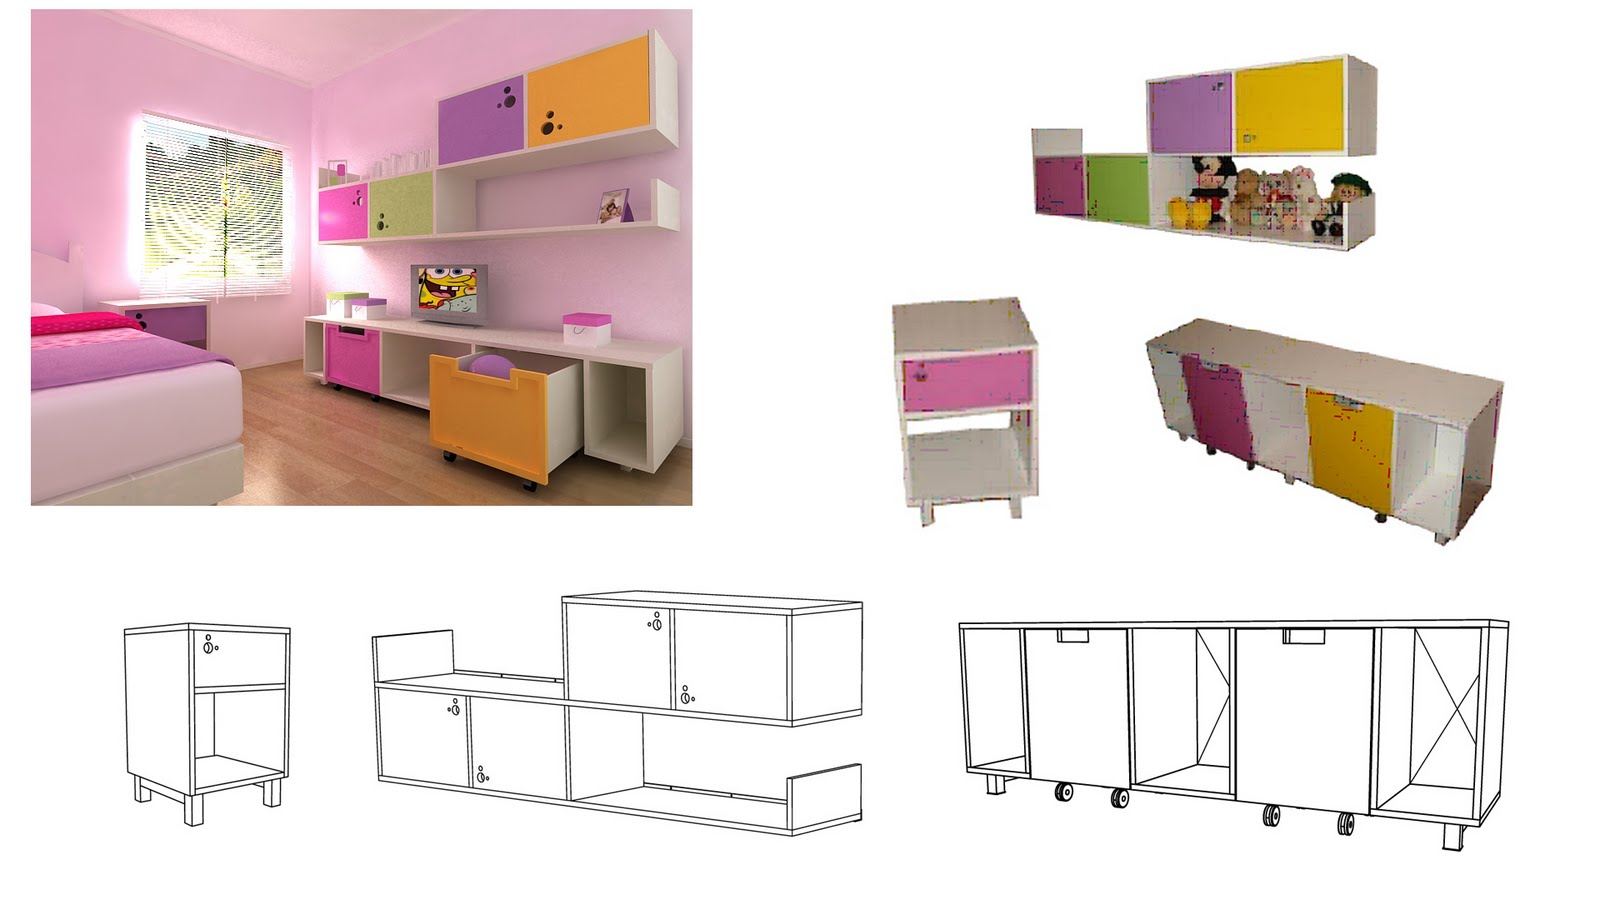 Pin muebles infantiles sapo hoja n 1 arte y madera on for Muebles infantiles